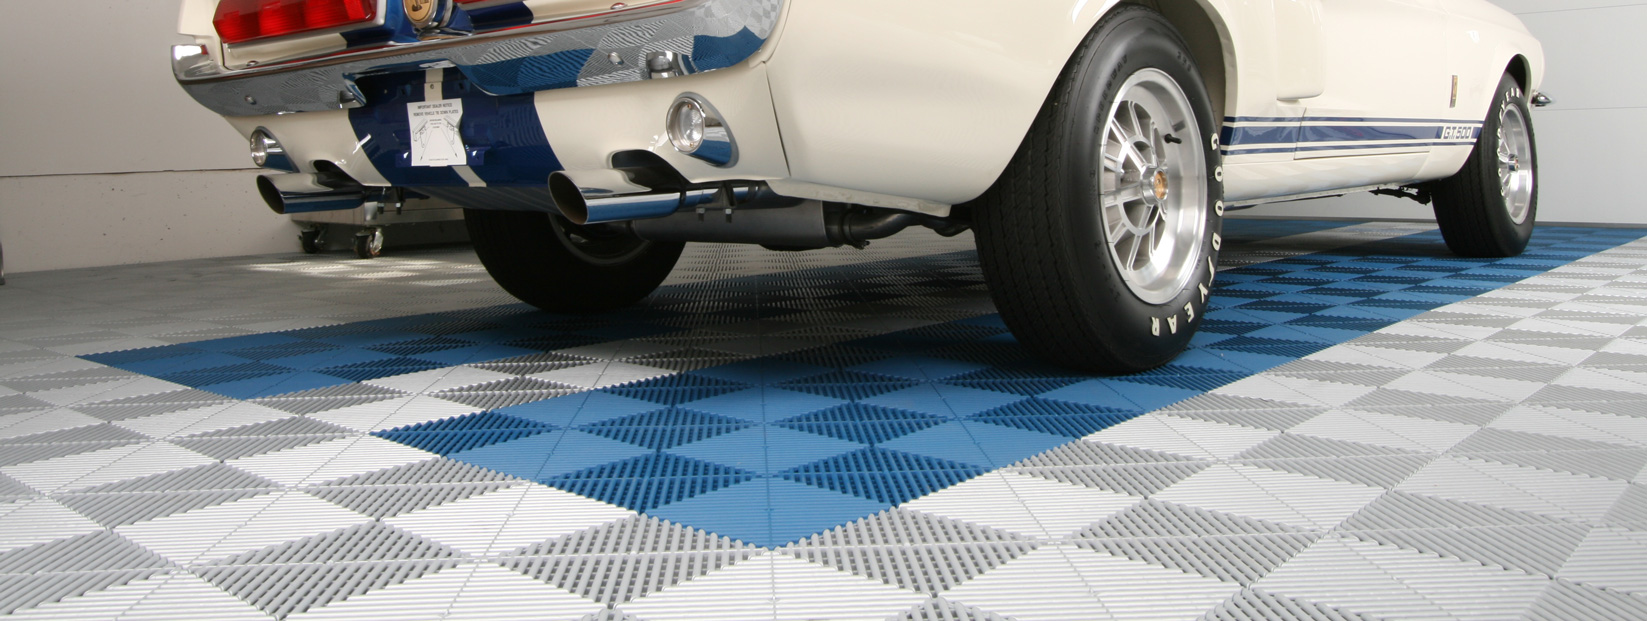 Garage Flooring Tiles Palm Beach